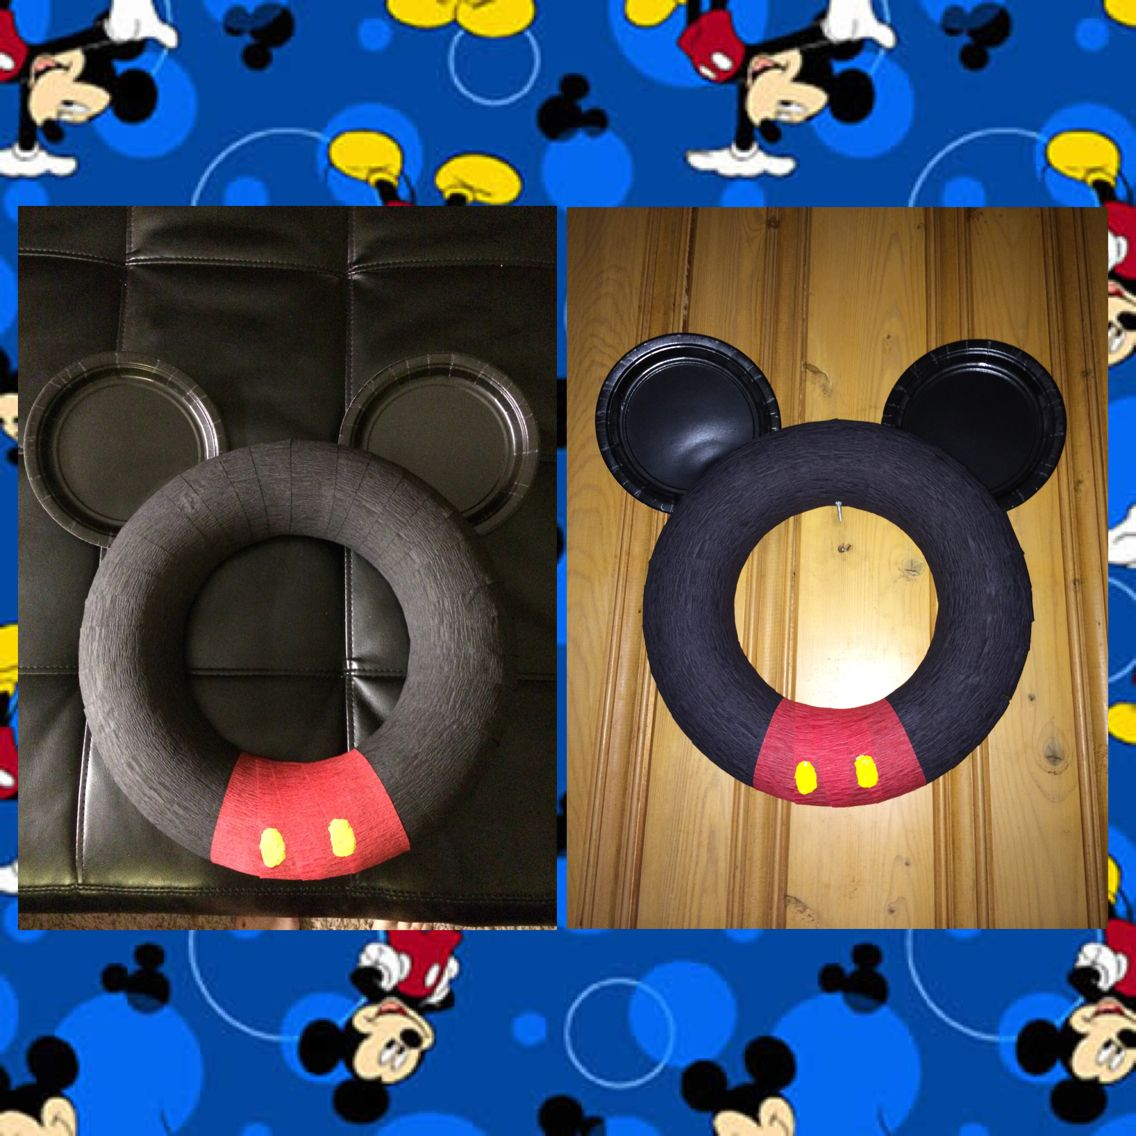 Cheap/easy wreath for Mickey Mouse party! #mickeymouse #clubhouse #birthday. & Cheap/easy wreath for Mickey Mouse party! #mickeymouse #clubhouse ...